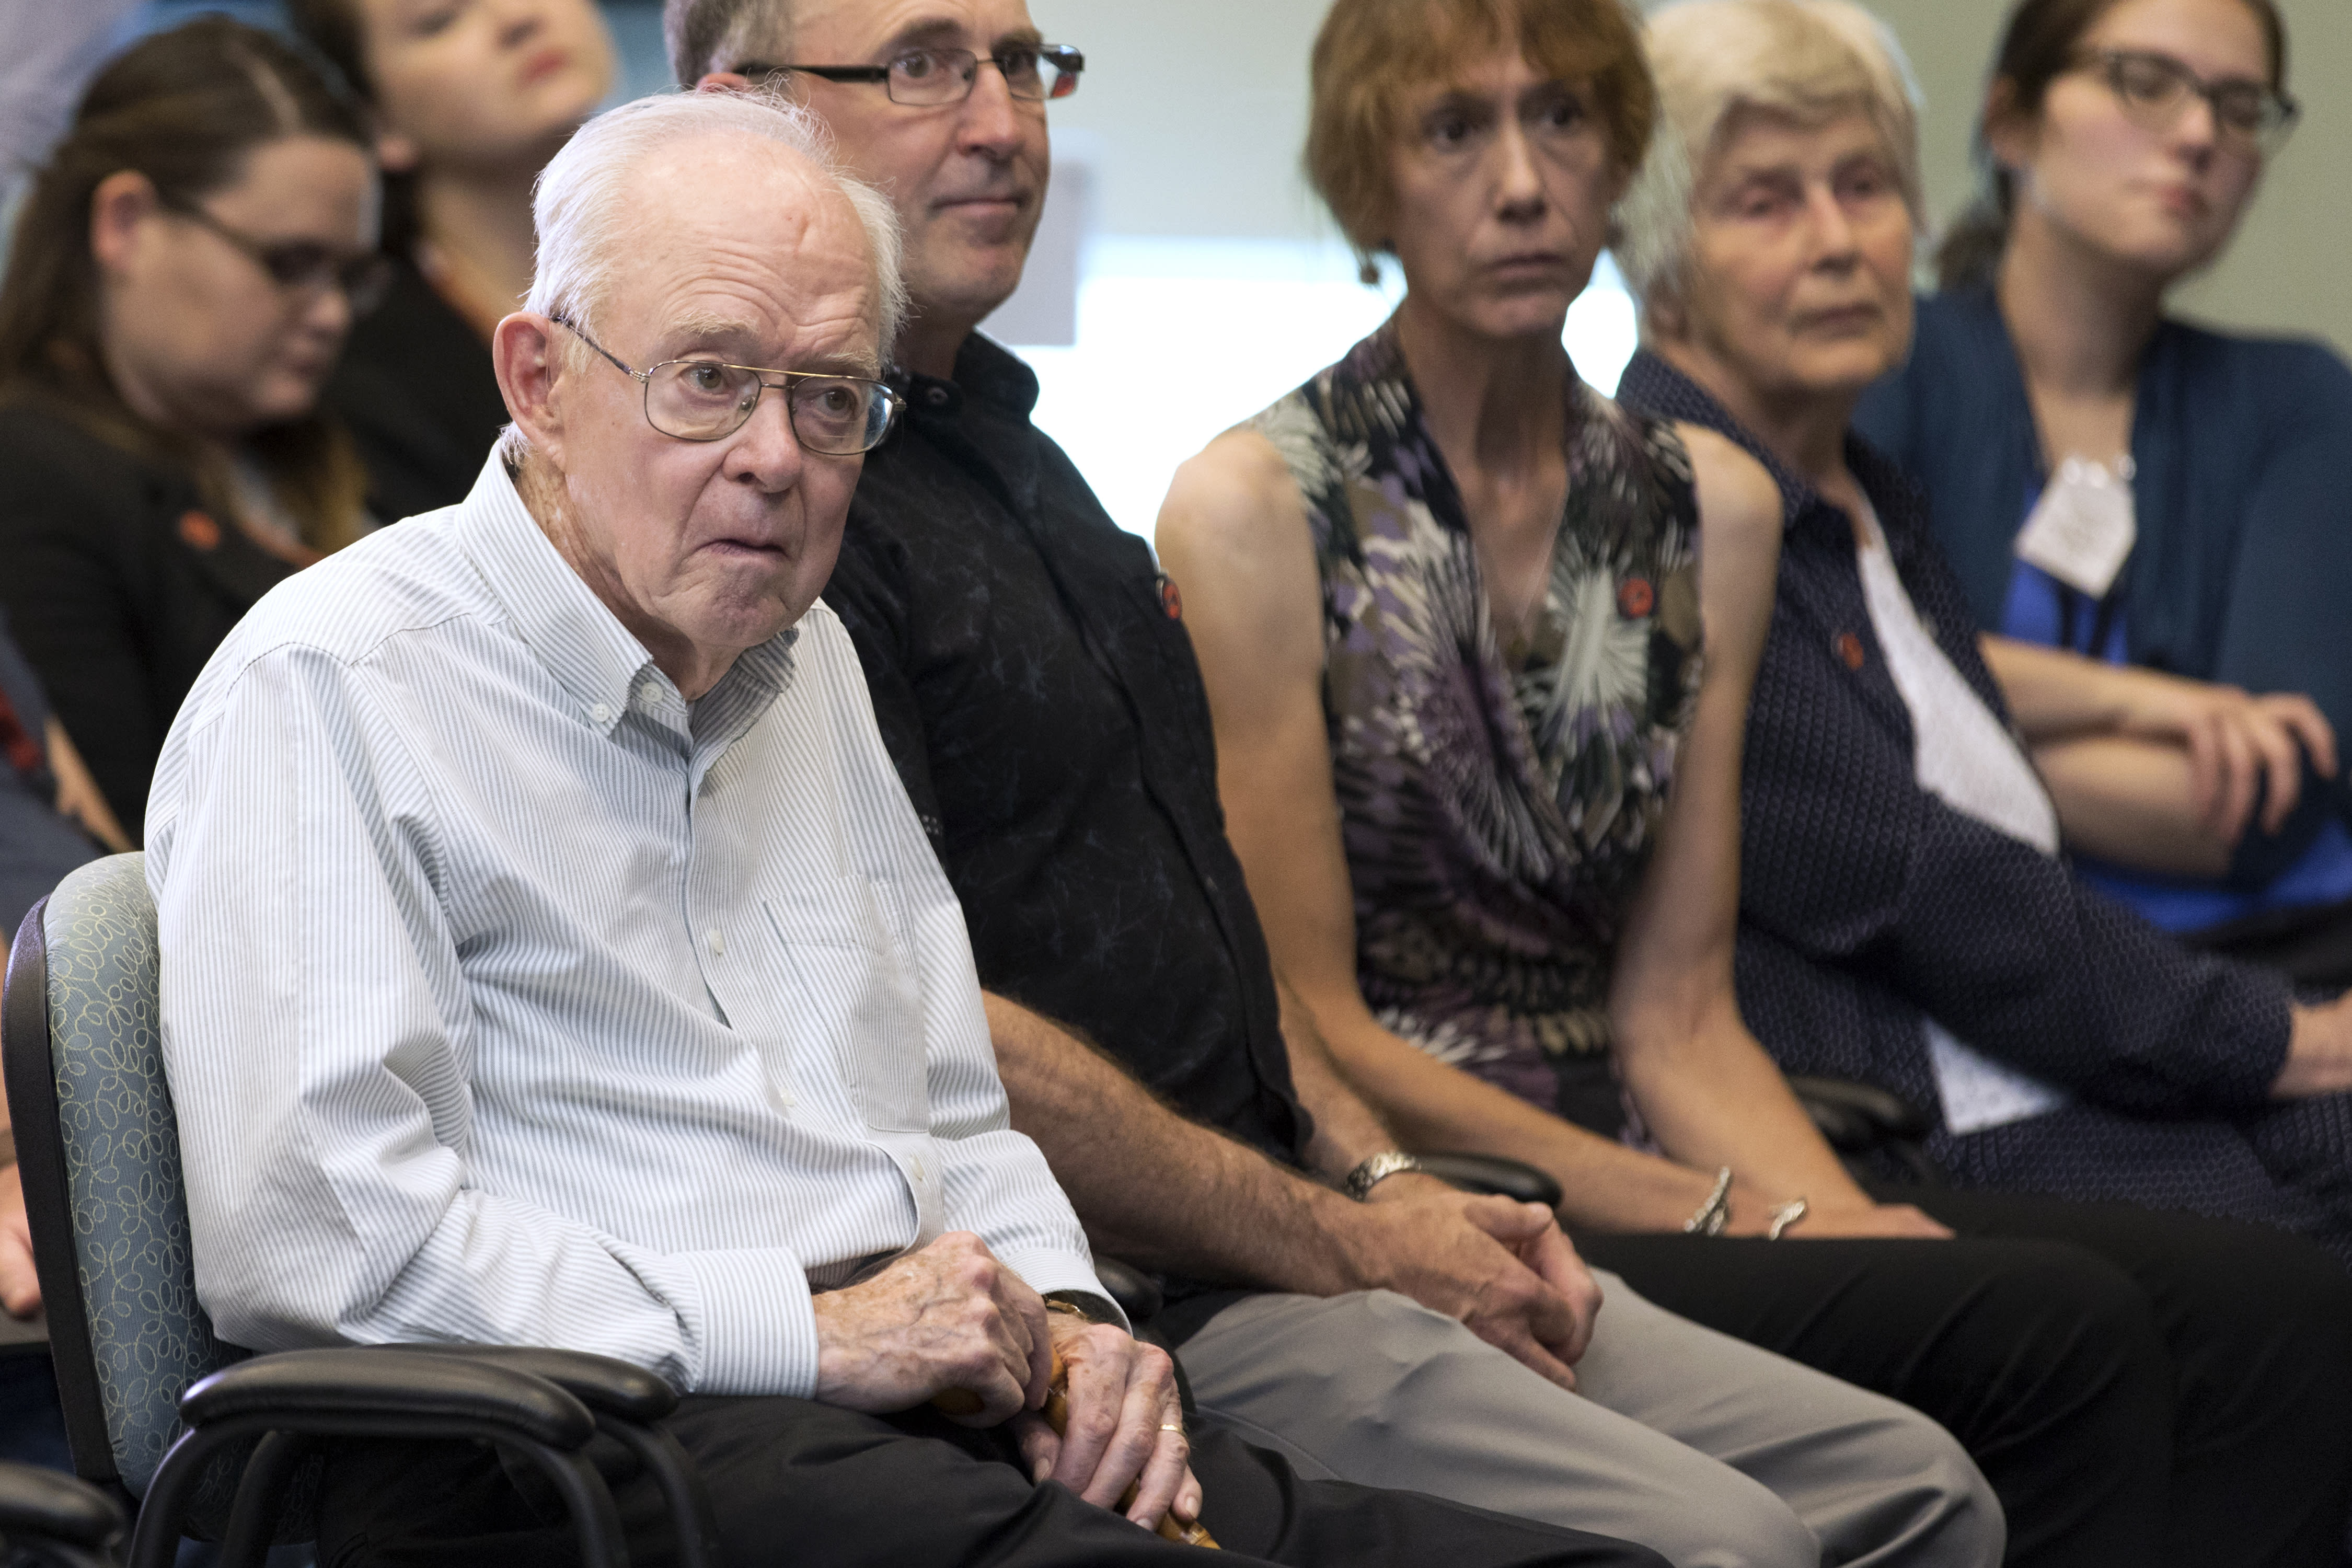 """In this Thursday, Aug. 9, 2018, astrophysicist Eugene Parker attends a news conference about the Parker Solar Probe named after him, at the Kennedy Space Center in Florida. Sixty years ago, the young astrophysicist proposed the existence of solar wind. Many were skeptical and told him to read up on it first """"so you don't make these killer mistakes,"""" he recalls. (Kim Shiflett/NASA via AP)"""